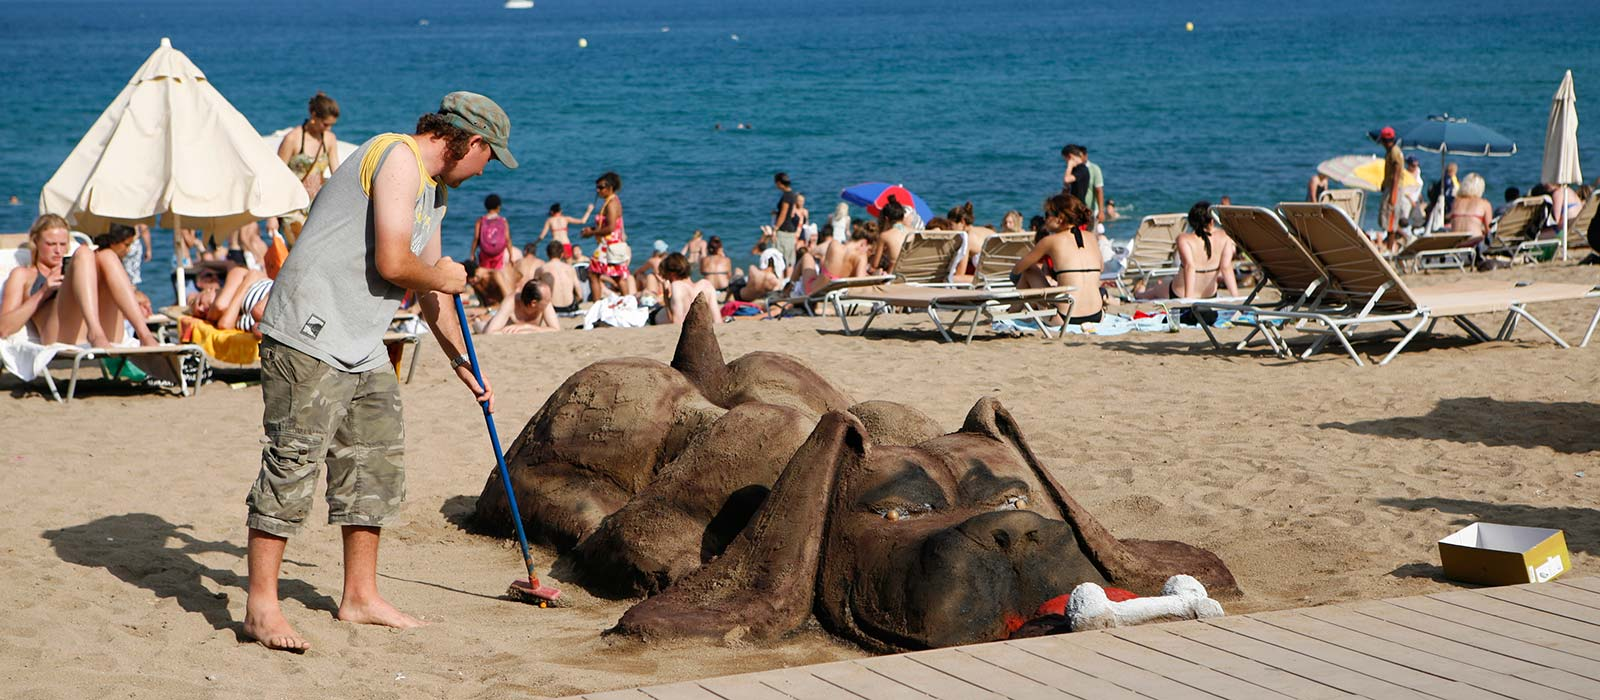 Barcelona beach sculpture of dog in sand